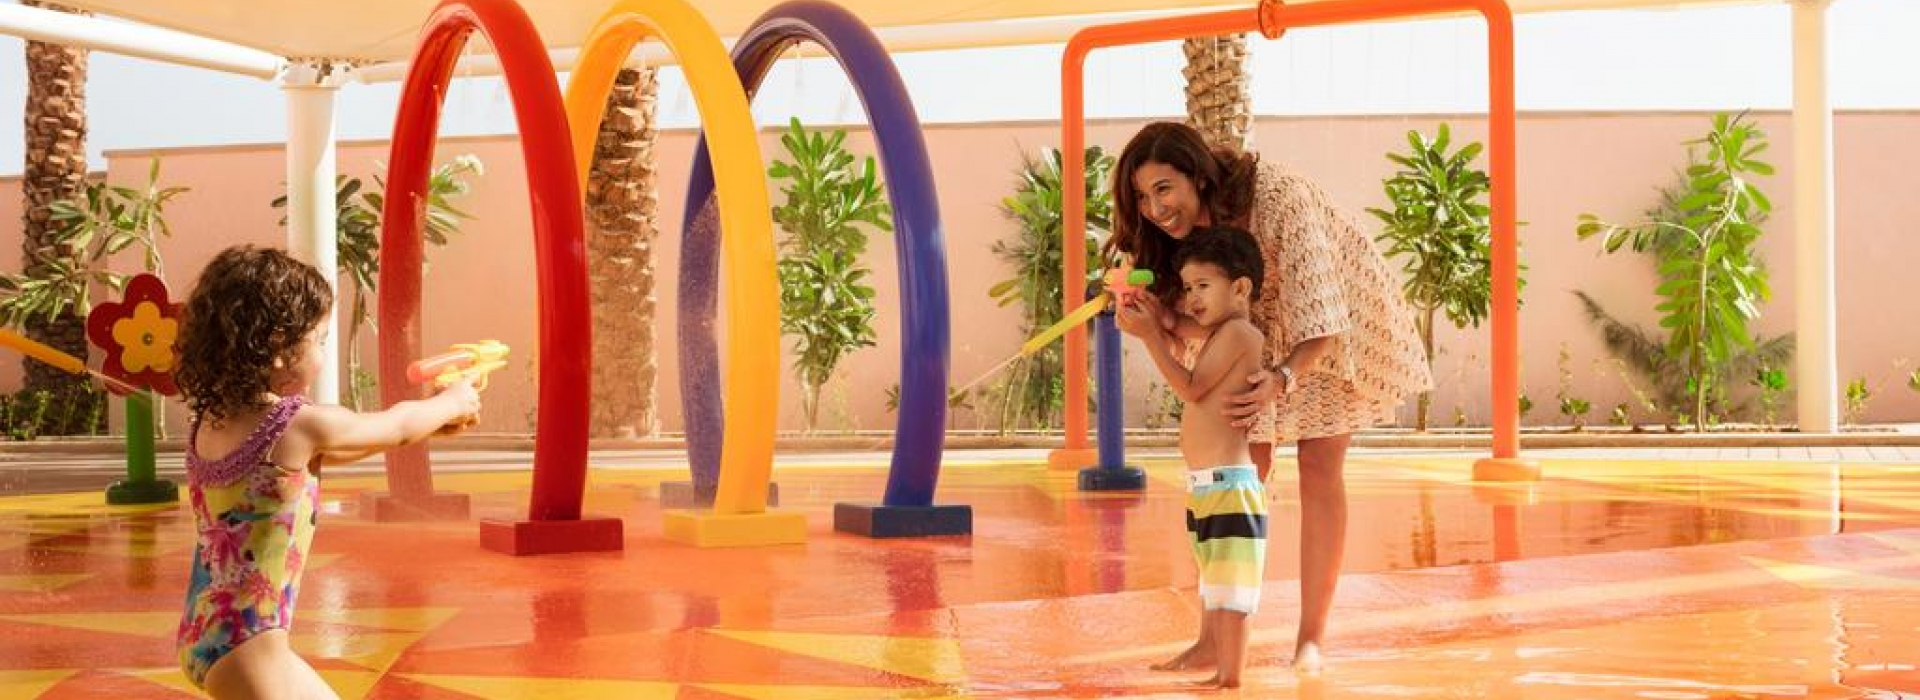 Fairmont Fujairah Resort 5*